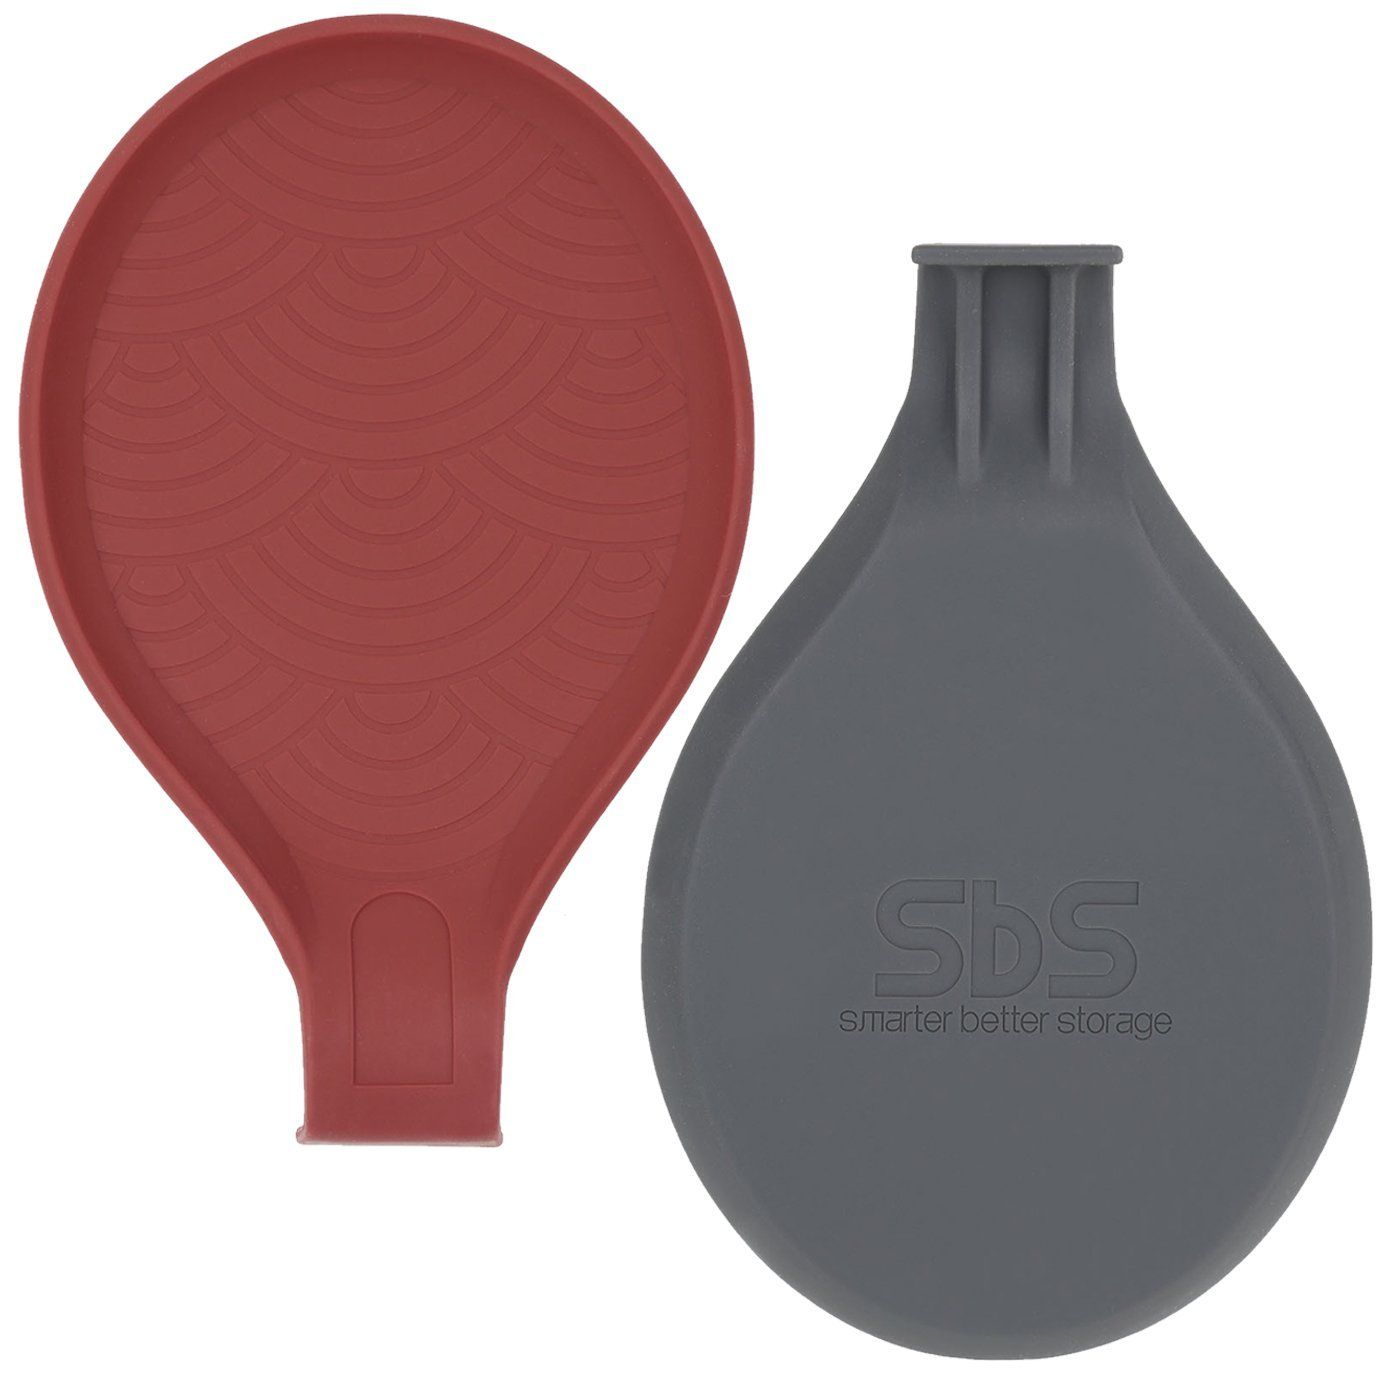 Sbs Low Profile Silicone Spoon Rest Amazon Lightning Deal Picks Http Wp Me P56eop Nk4 Spoon Rests Red And Grey Kitchen Accessories Decor